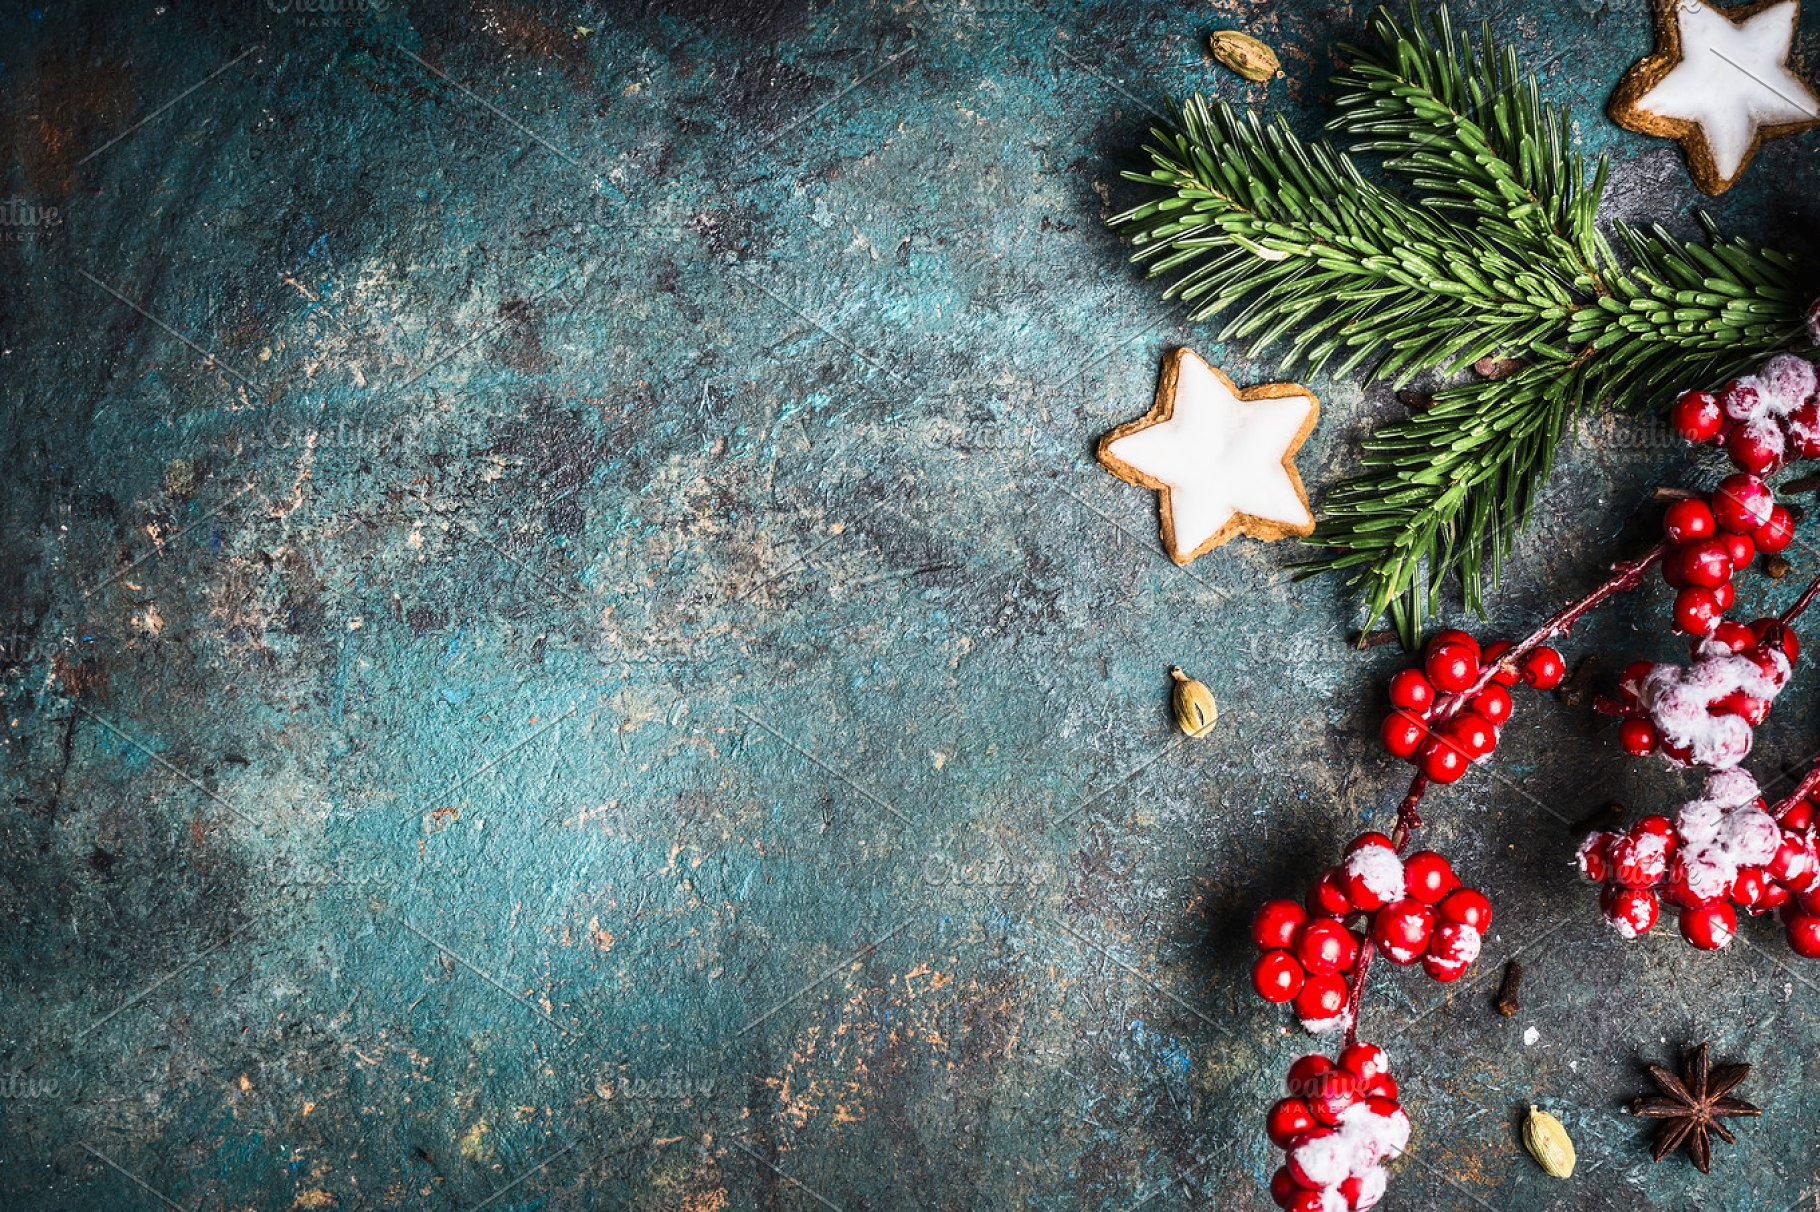 Christmas Background Pic.Rustic Christmas Background